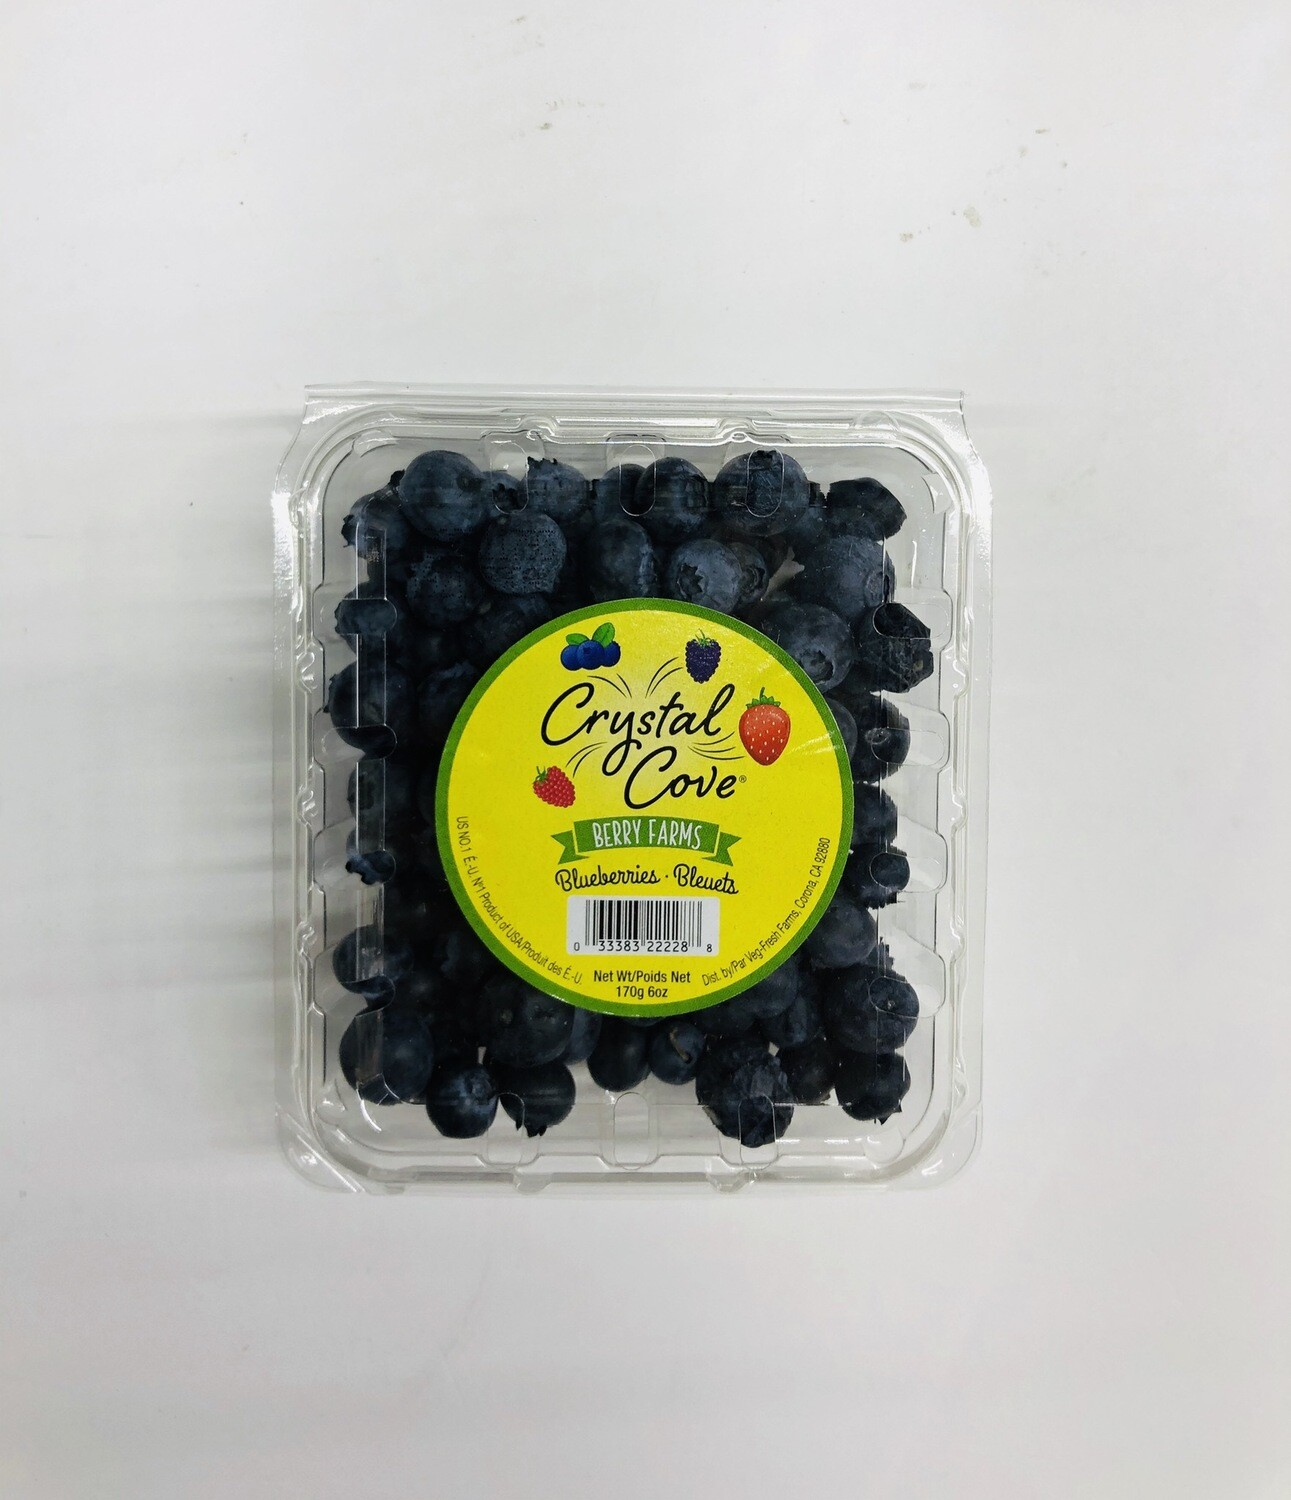 蓝莓 BLUEBERRIES BIEUETS ~1 BOX